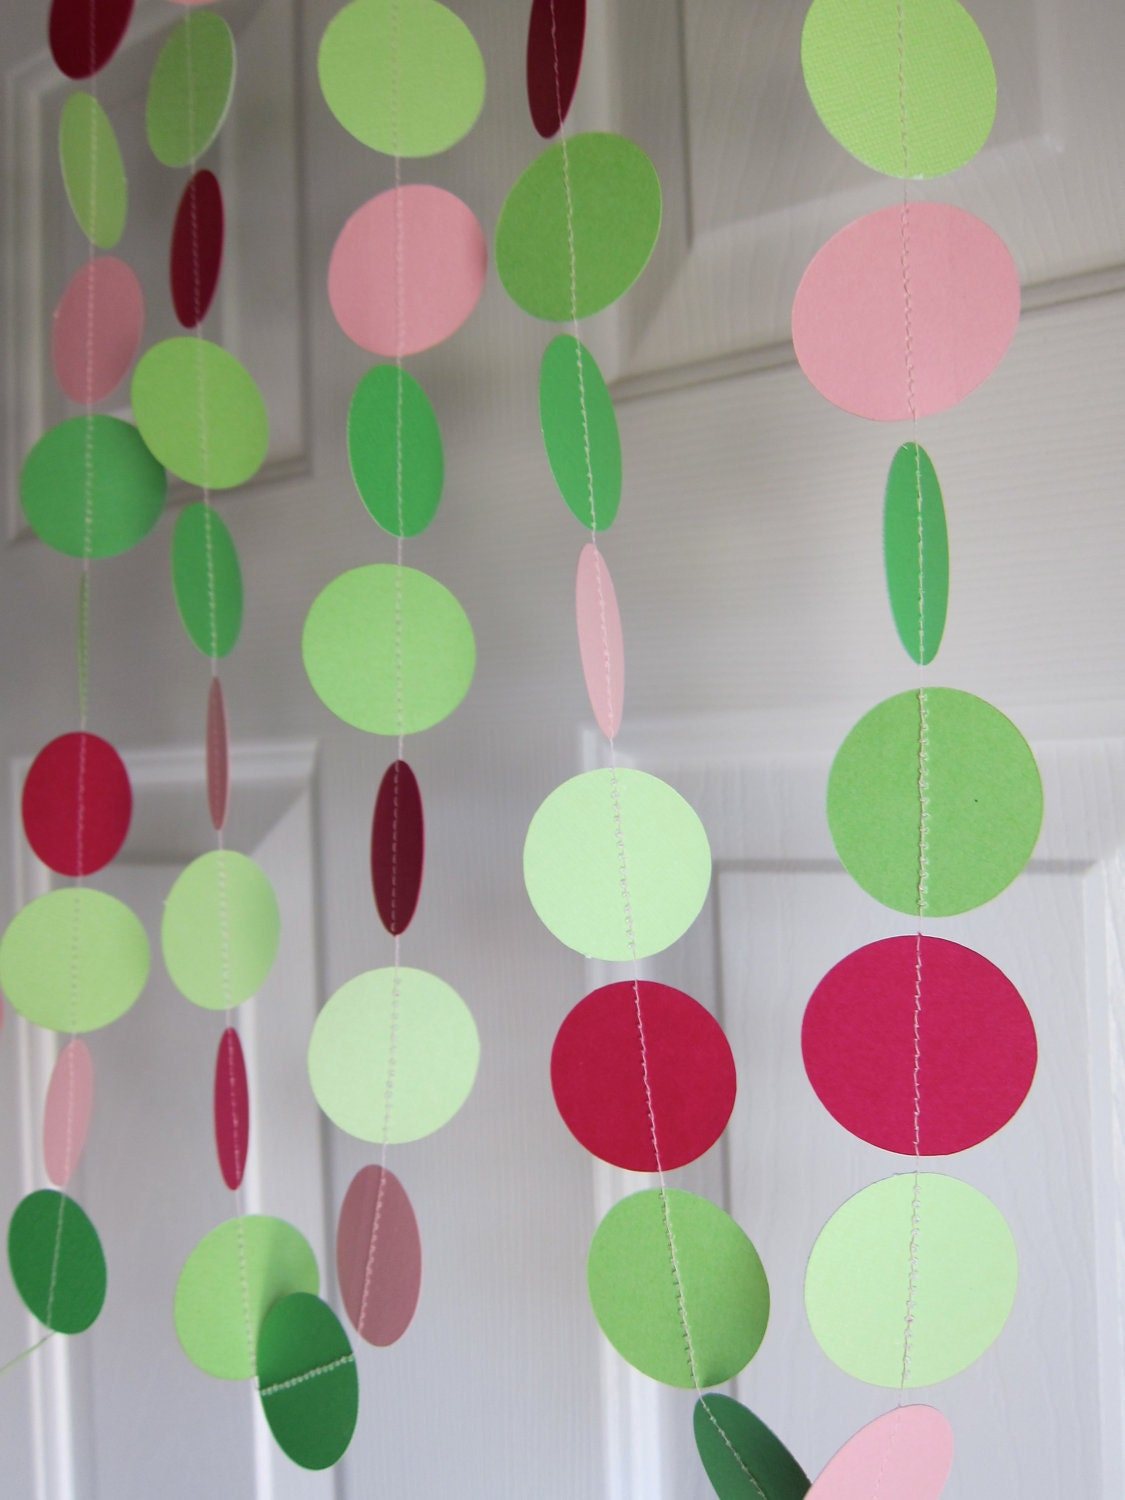 Paper Decorations for Parties